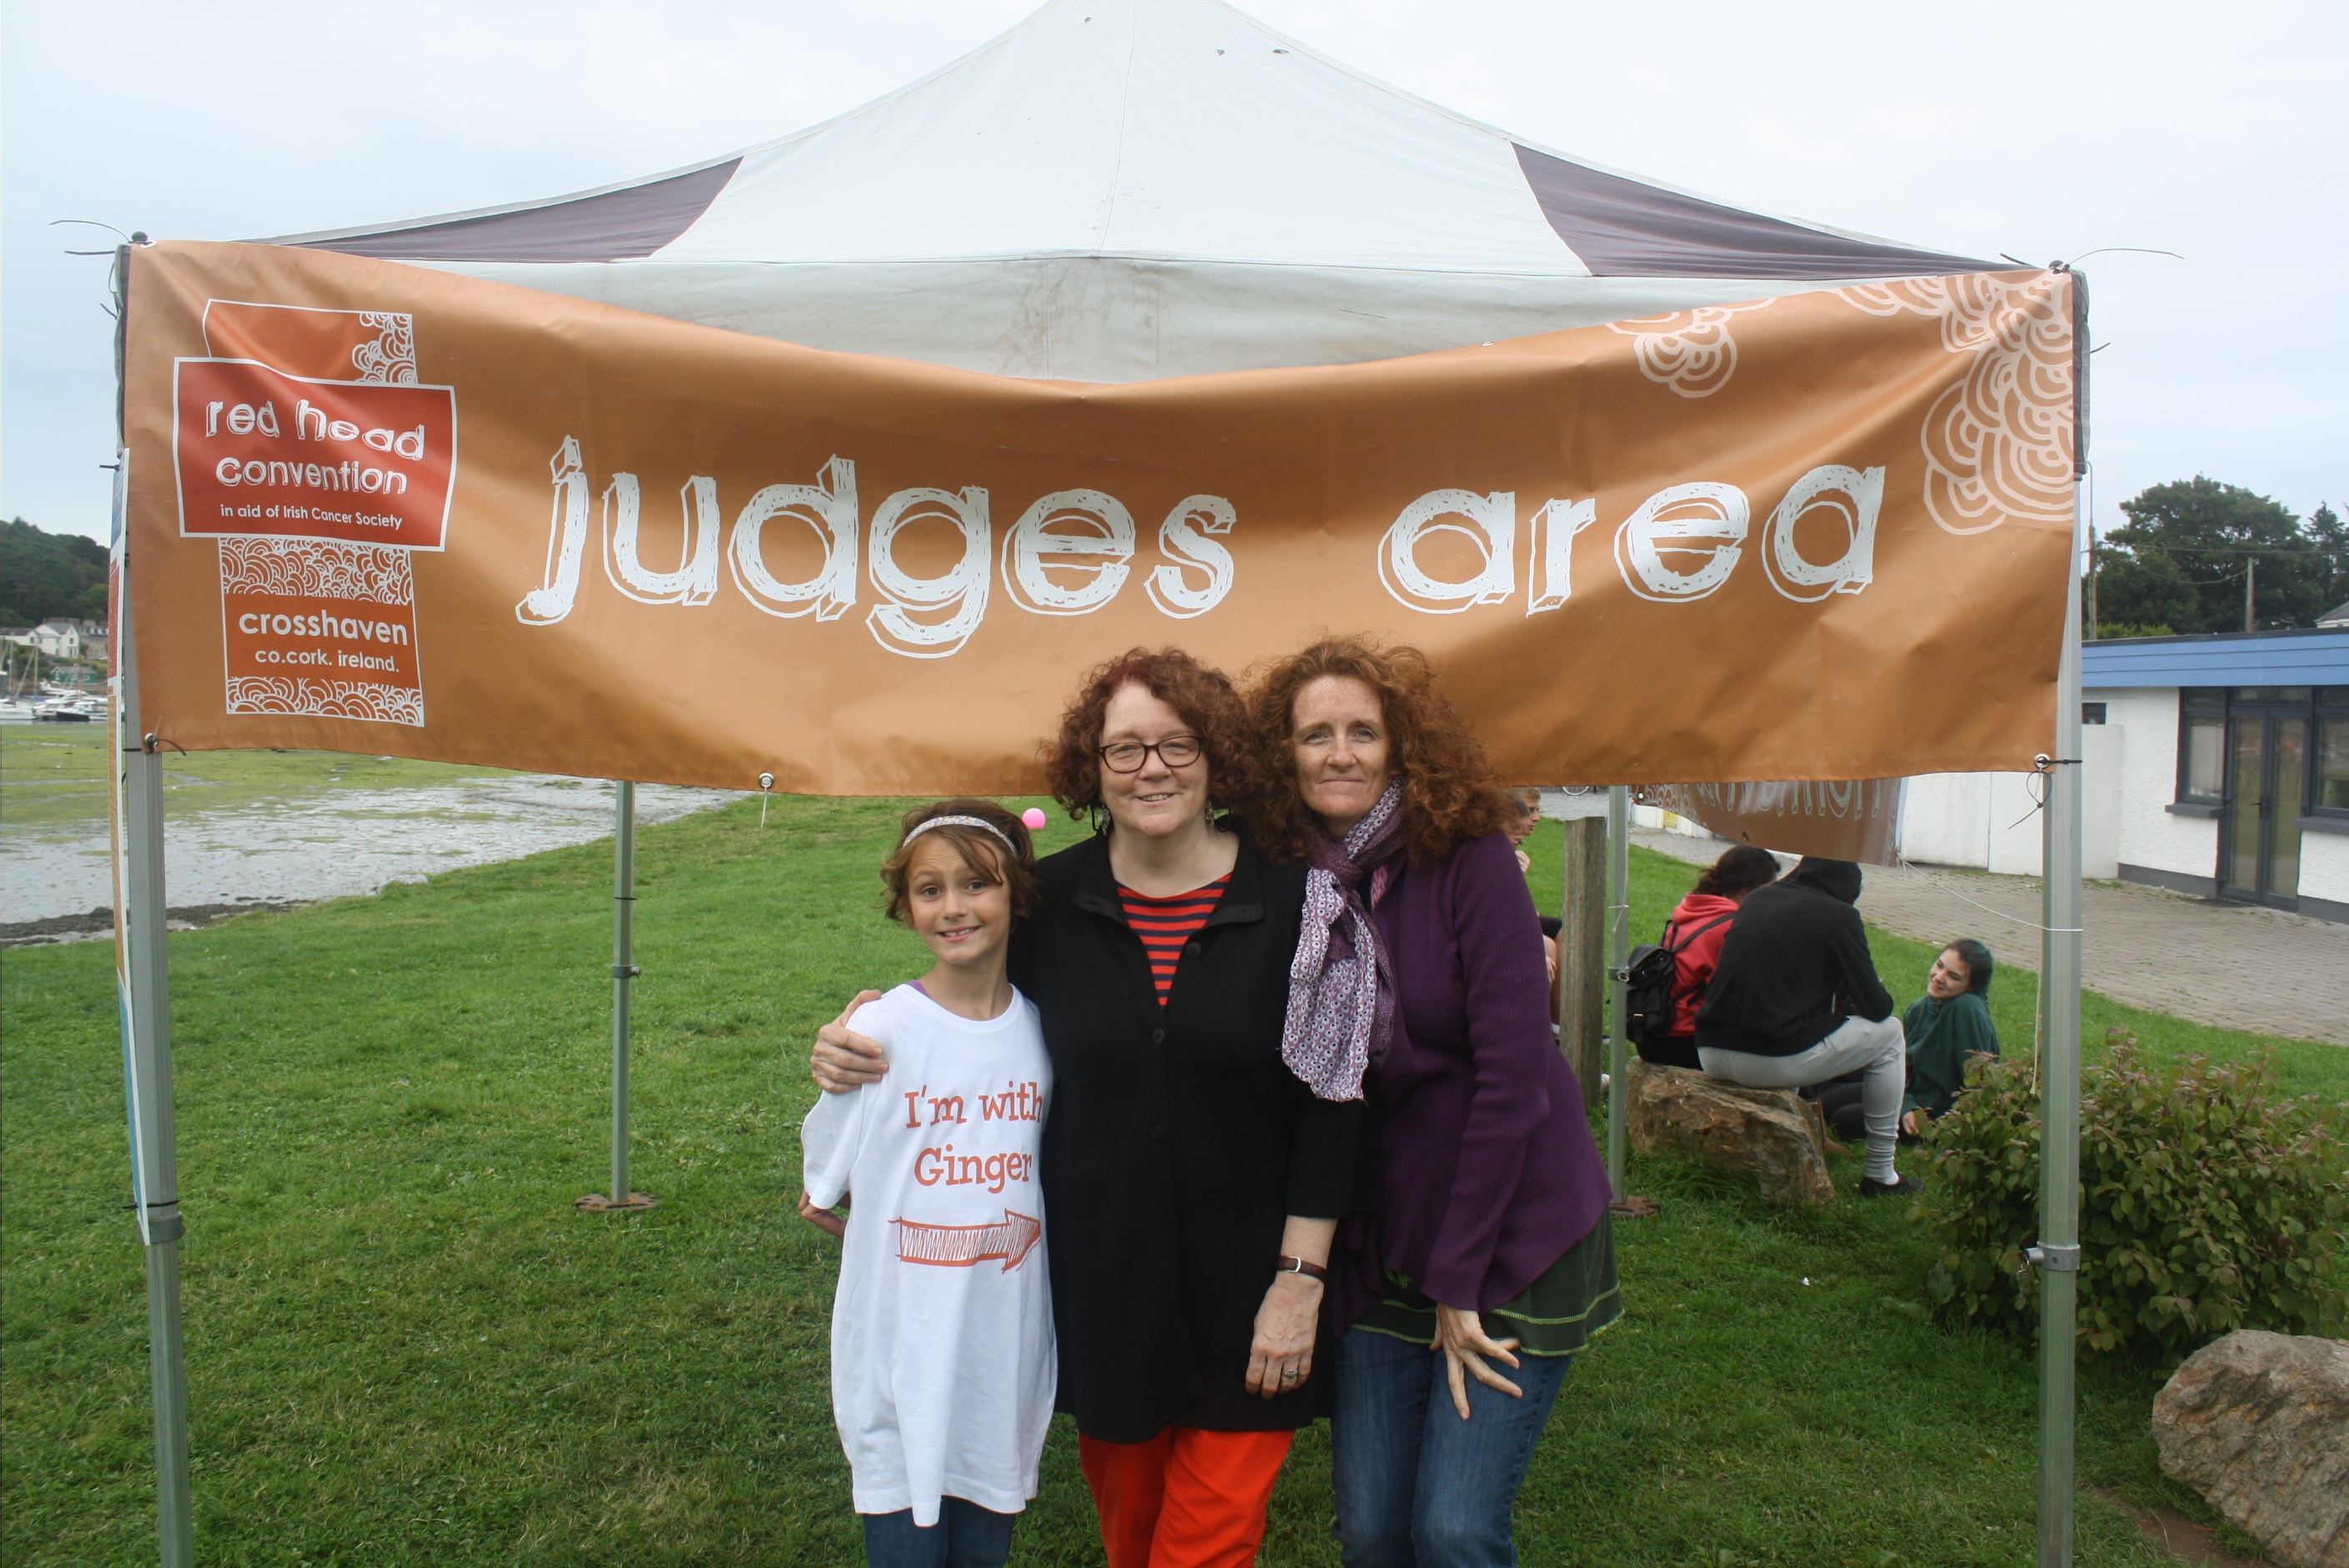 Ruby Patton, Julia Judge & Kate Patton at the Red Headed Convention.